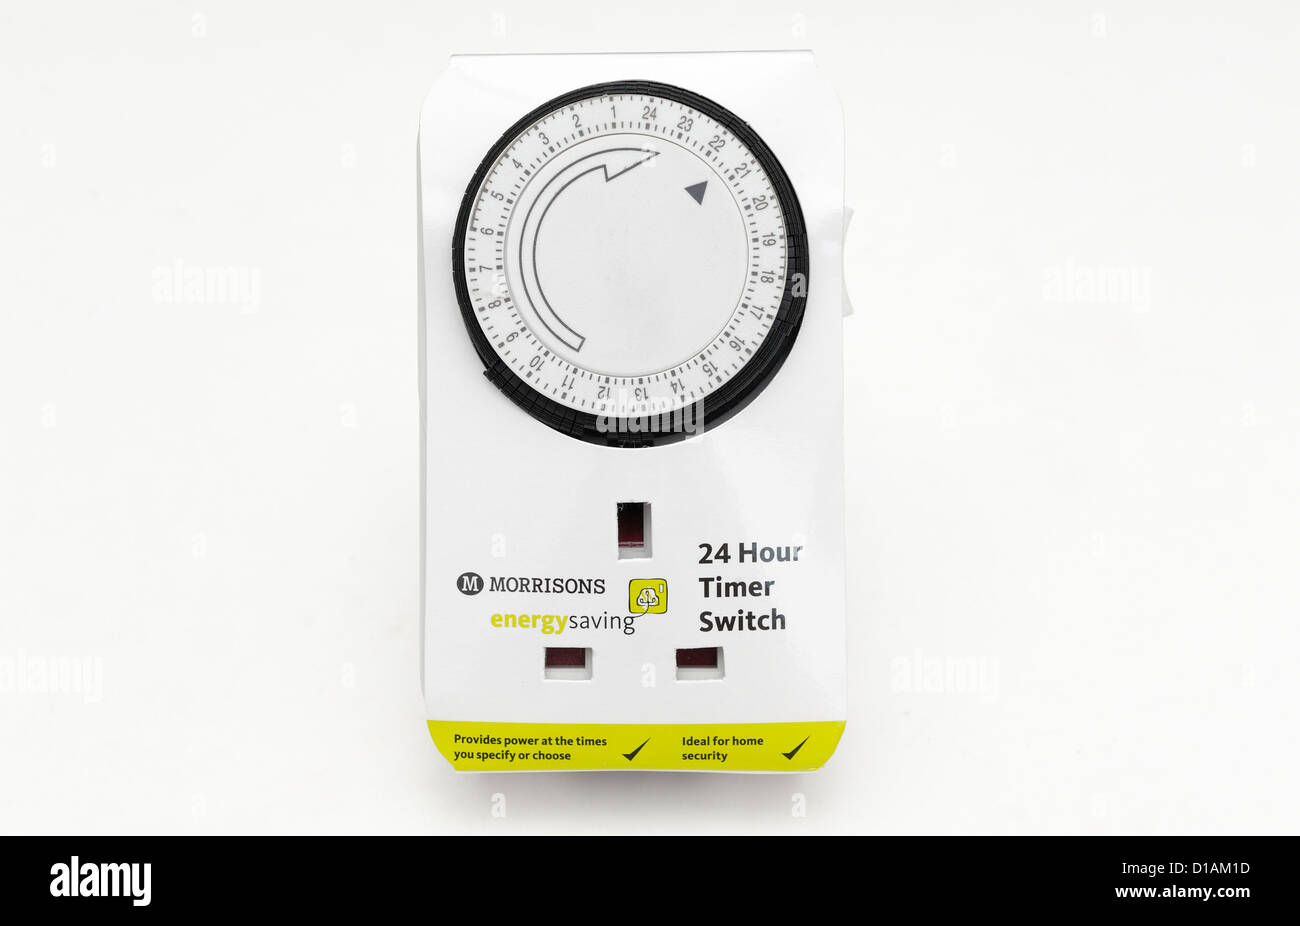 24 hour plug socket  timer switch - Stock Image